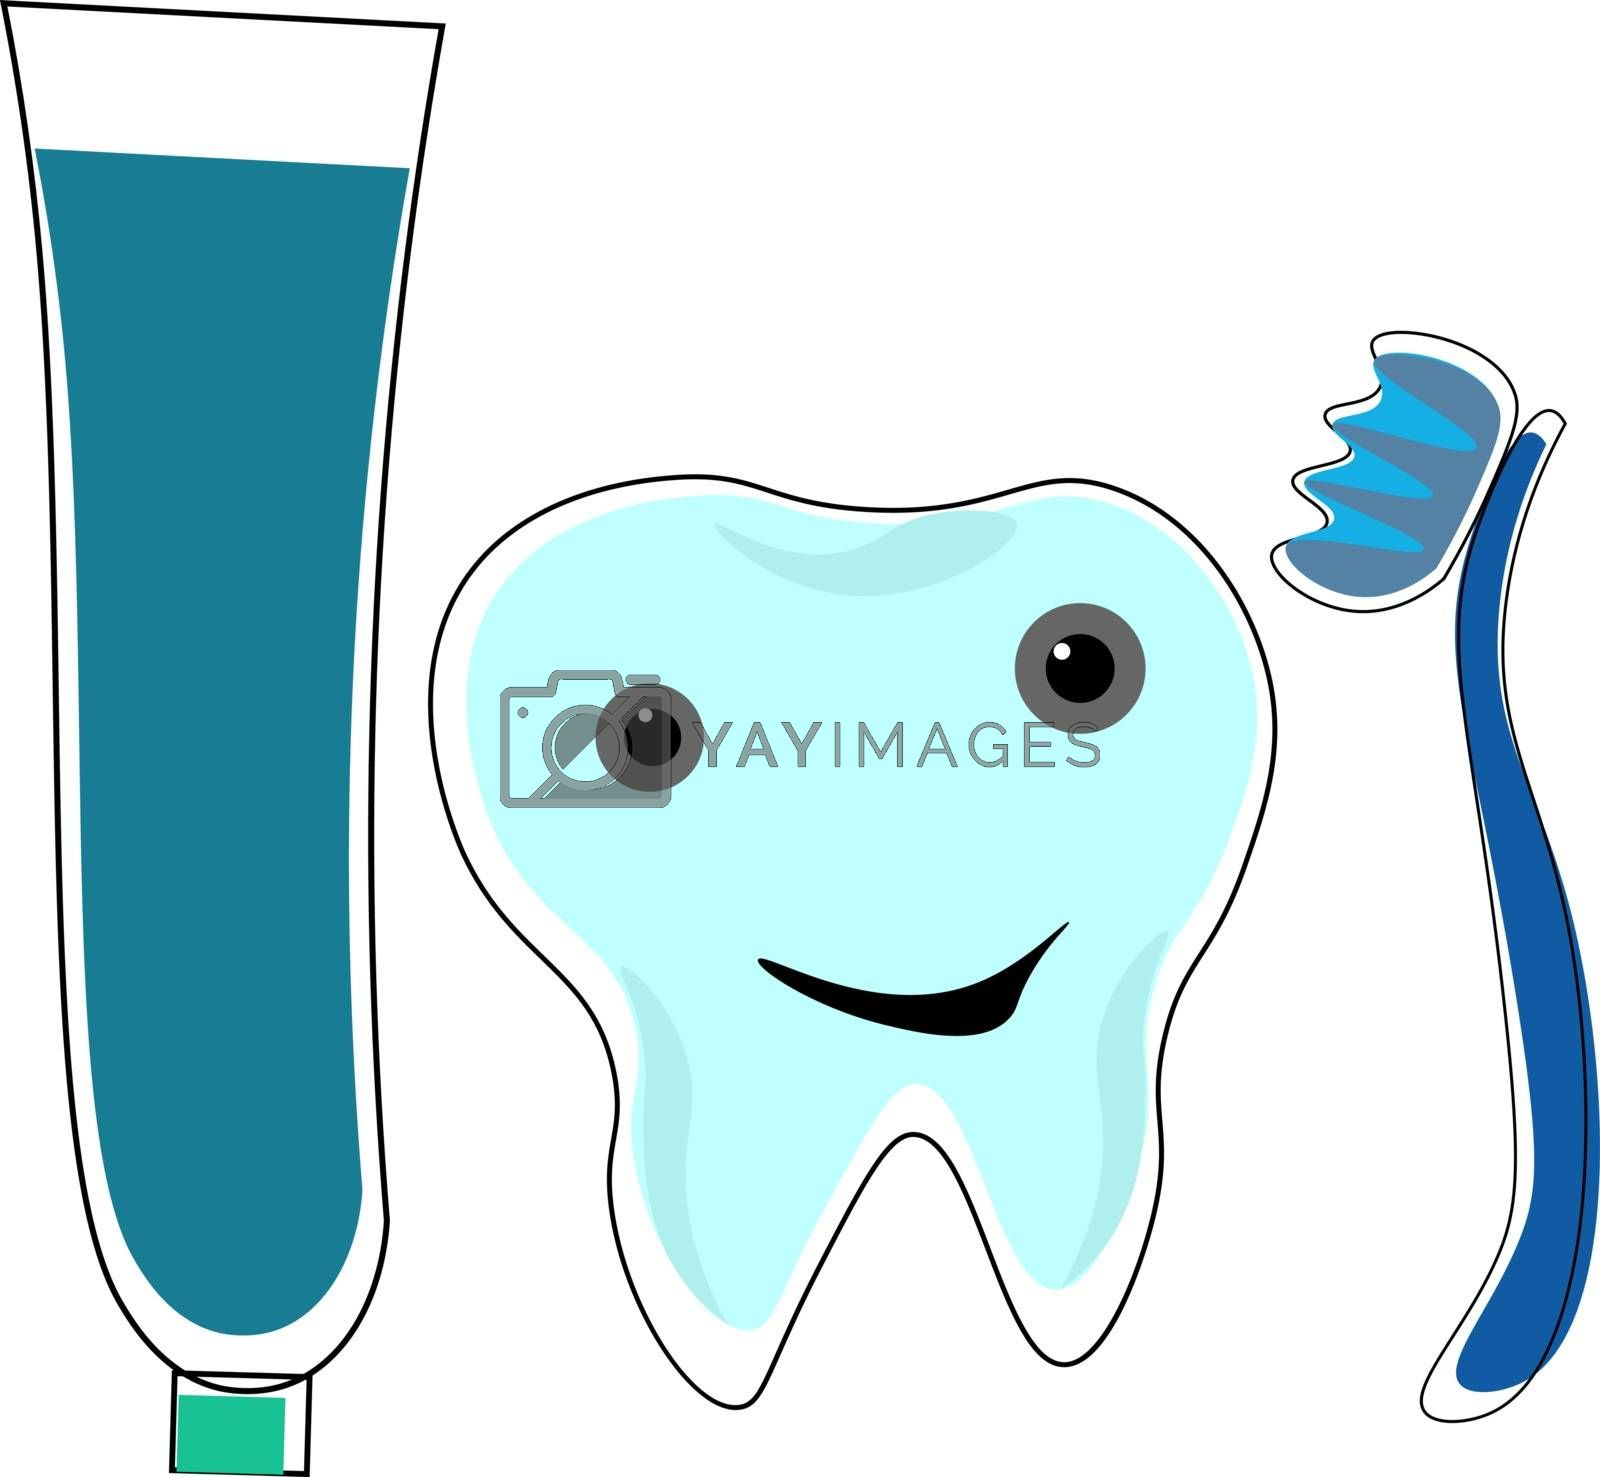 Royalty free image of Clipart of a tooth emoji along with a tooth brush and a tooth pa by Morphart